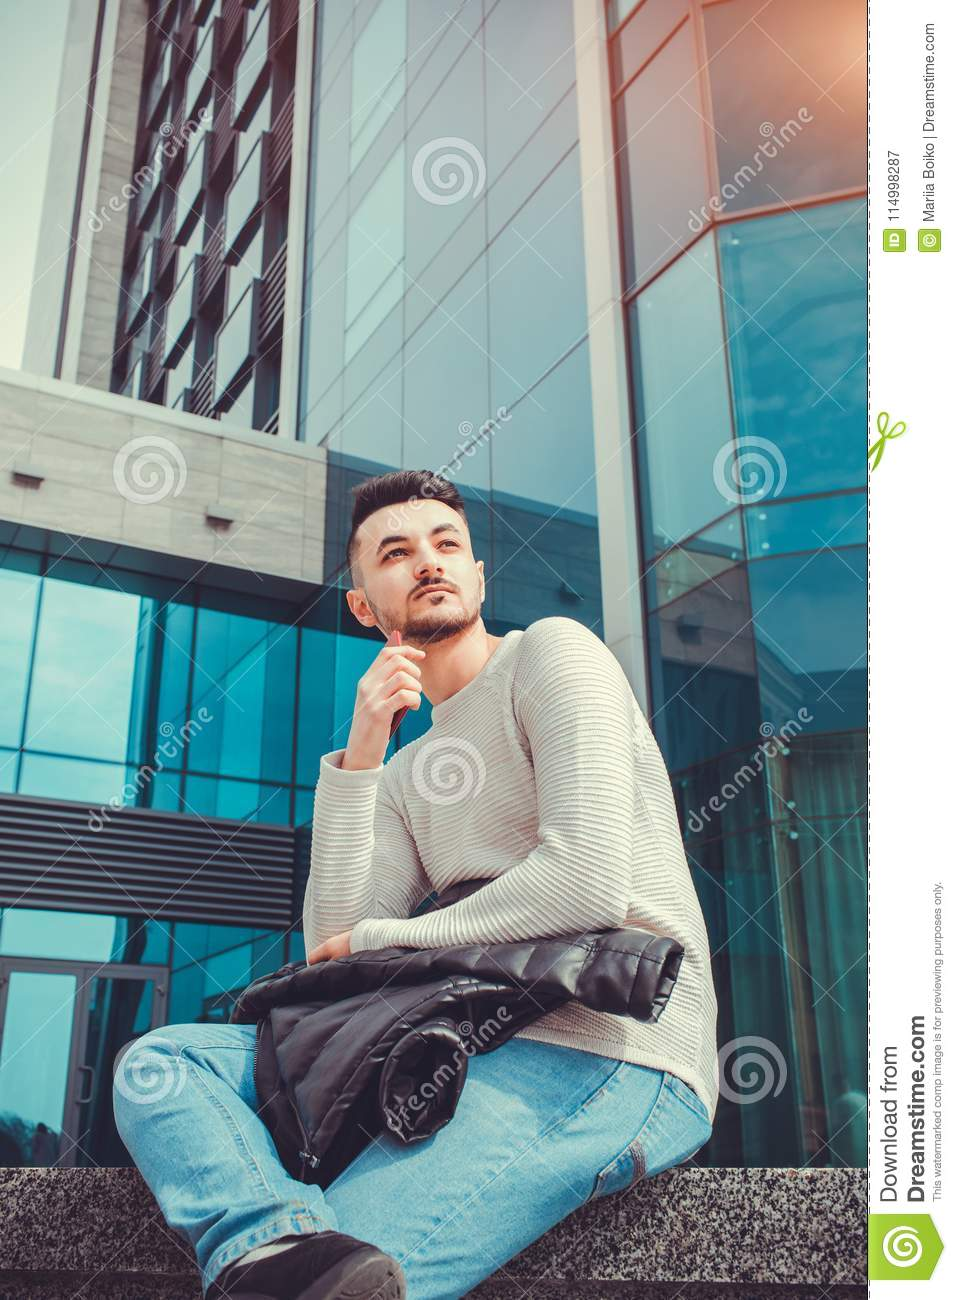 Arabian student waiting for a call outside. Man chilling out in front of modern building after classes